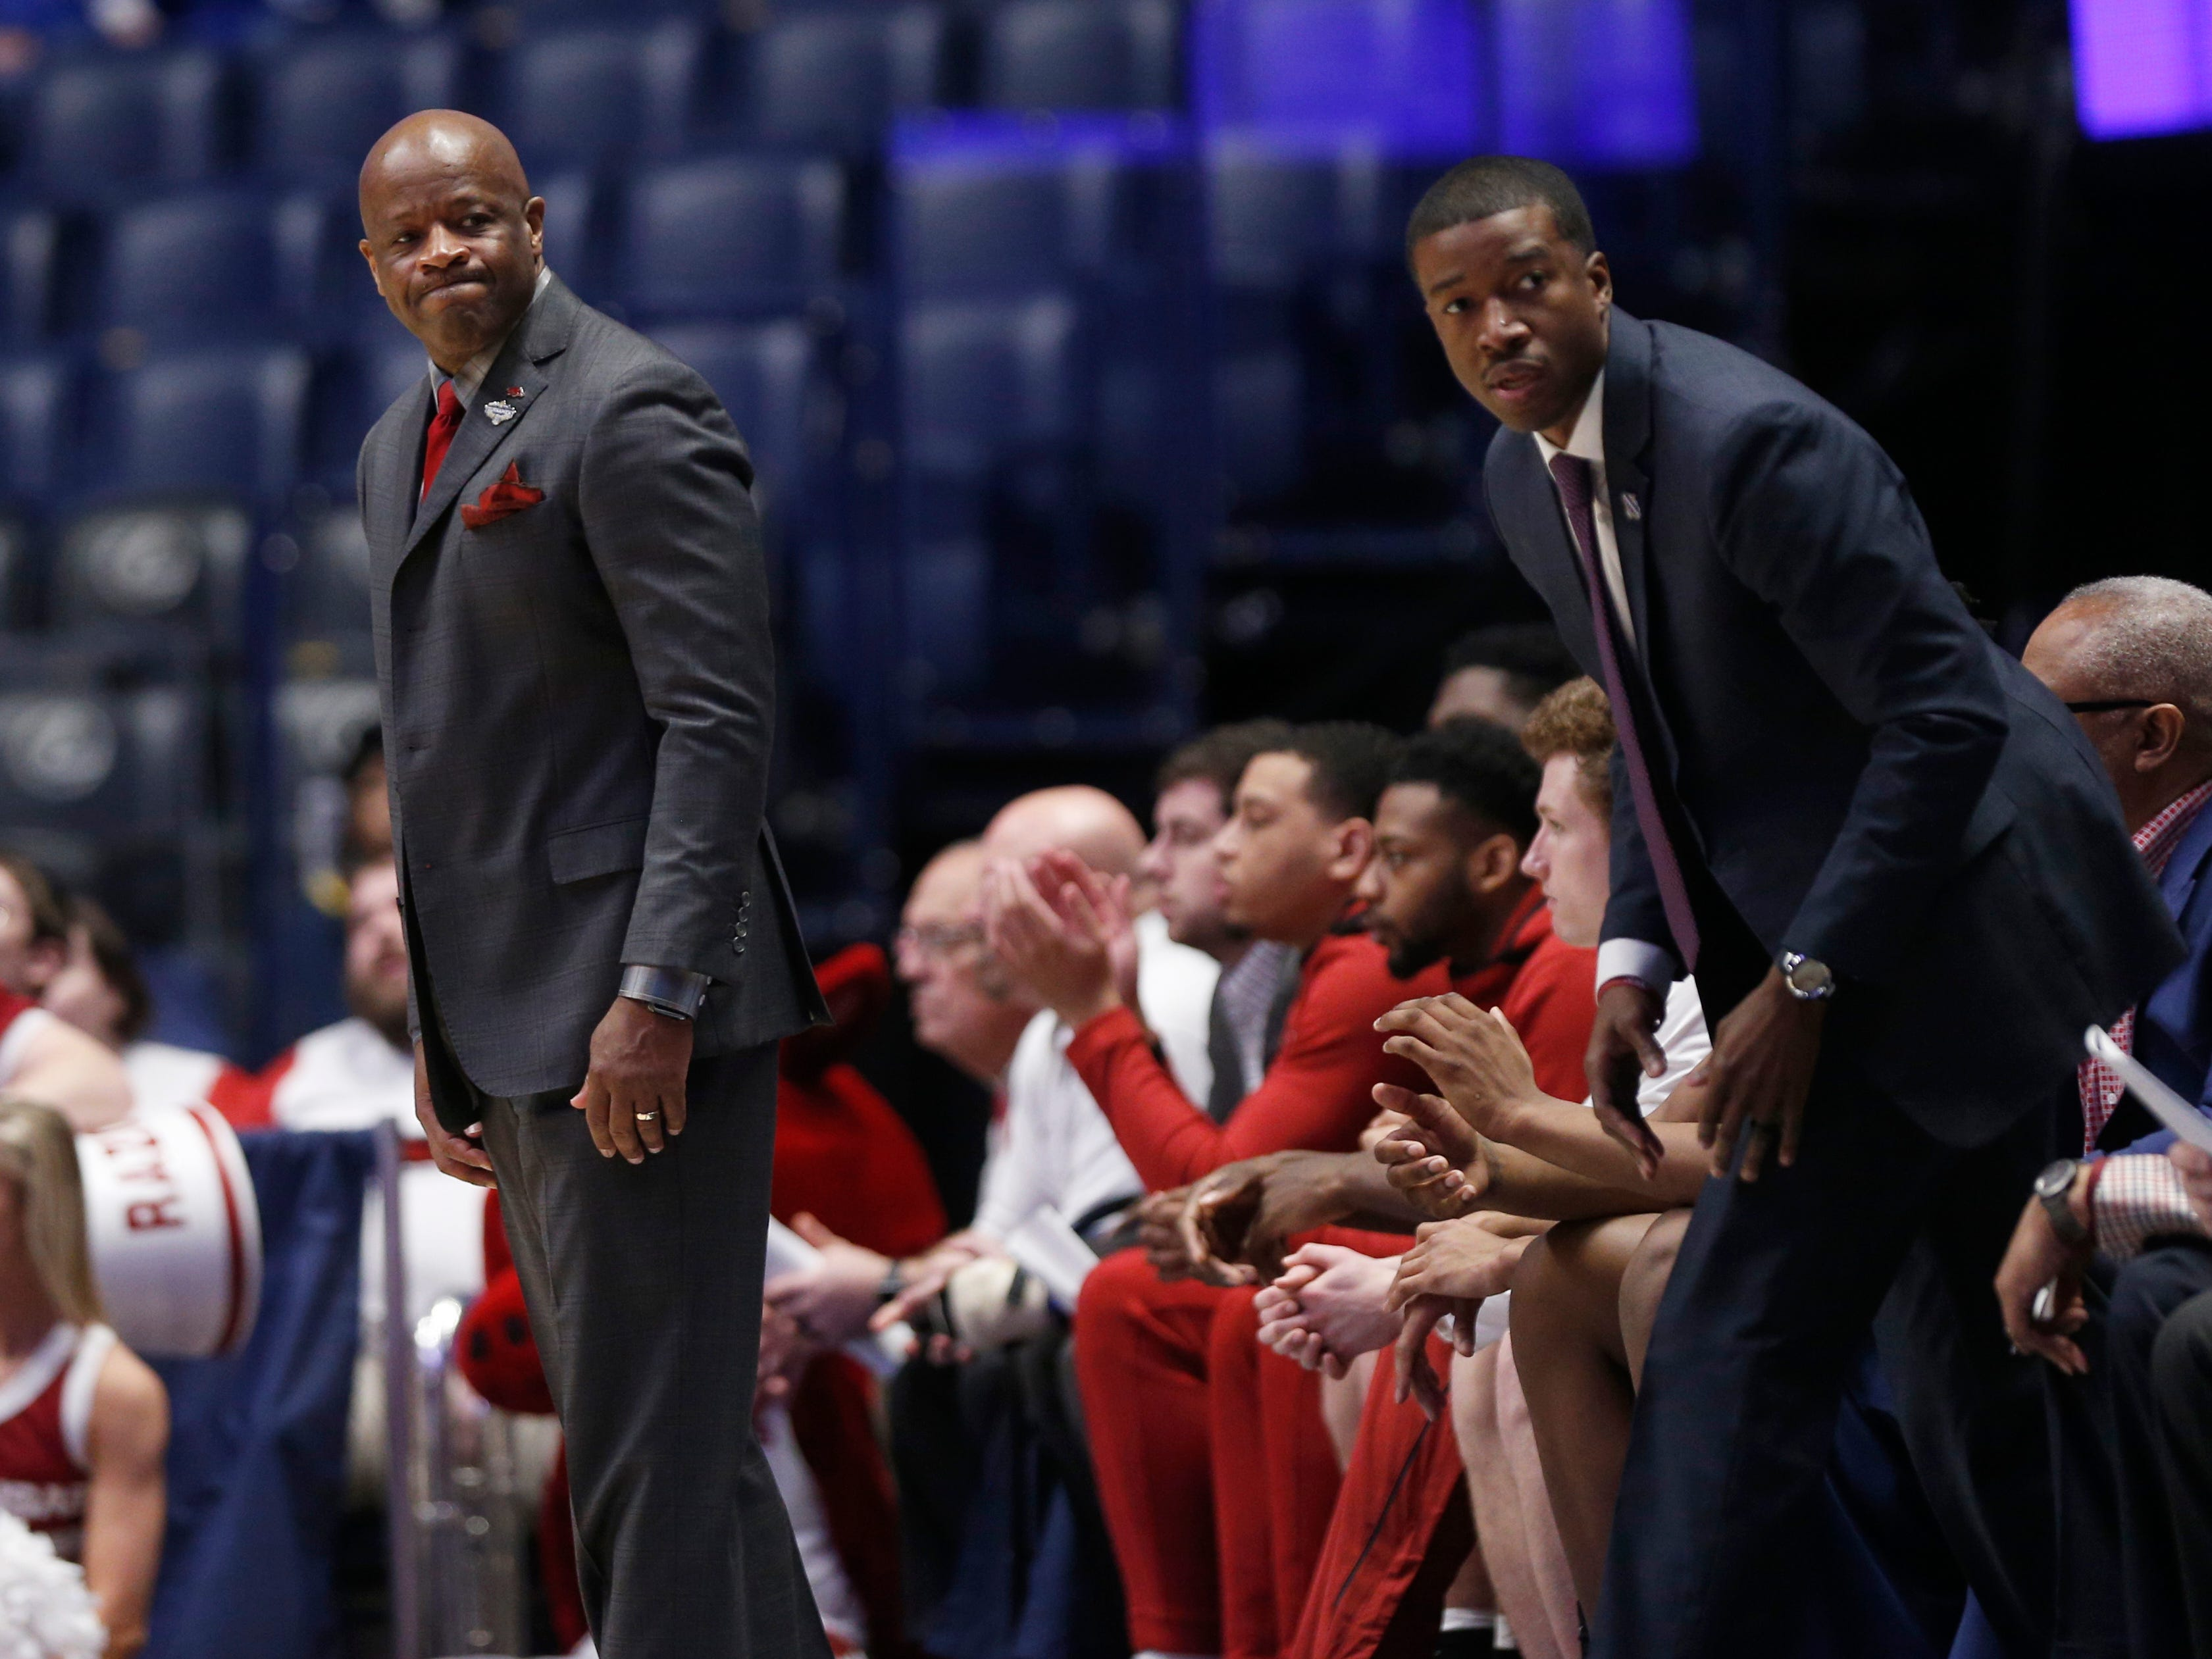 Arkansas head coach Mike Anderson and assistant coach TJ Cleveland watch the team during the first half of the SEC Men's Basketball Tournament game at Bridgestone Arena in Nashville, Tenn., Thursday, March 14, 2019.